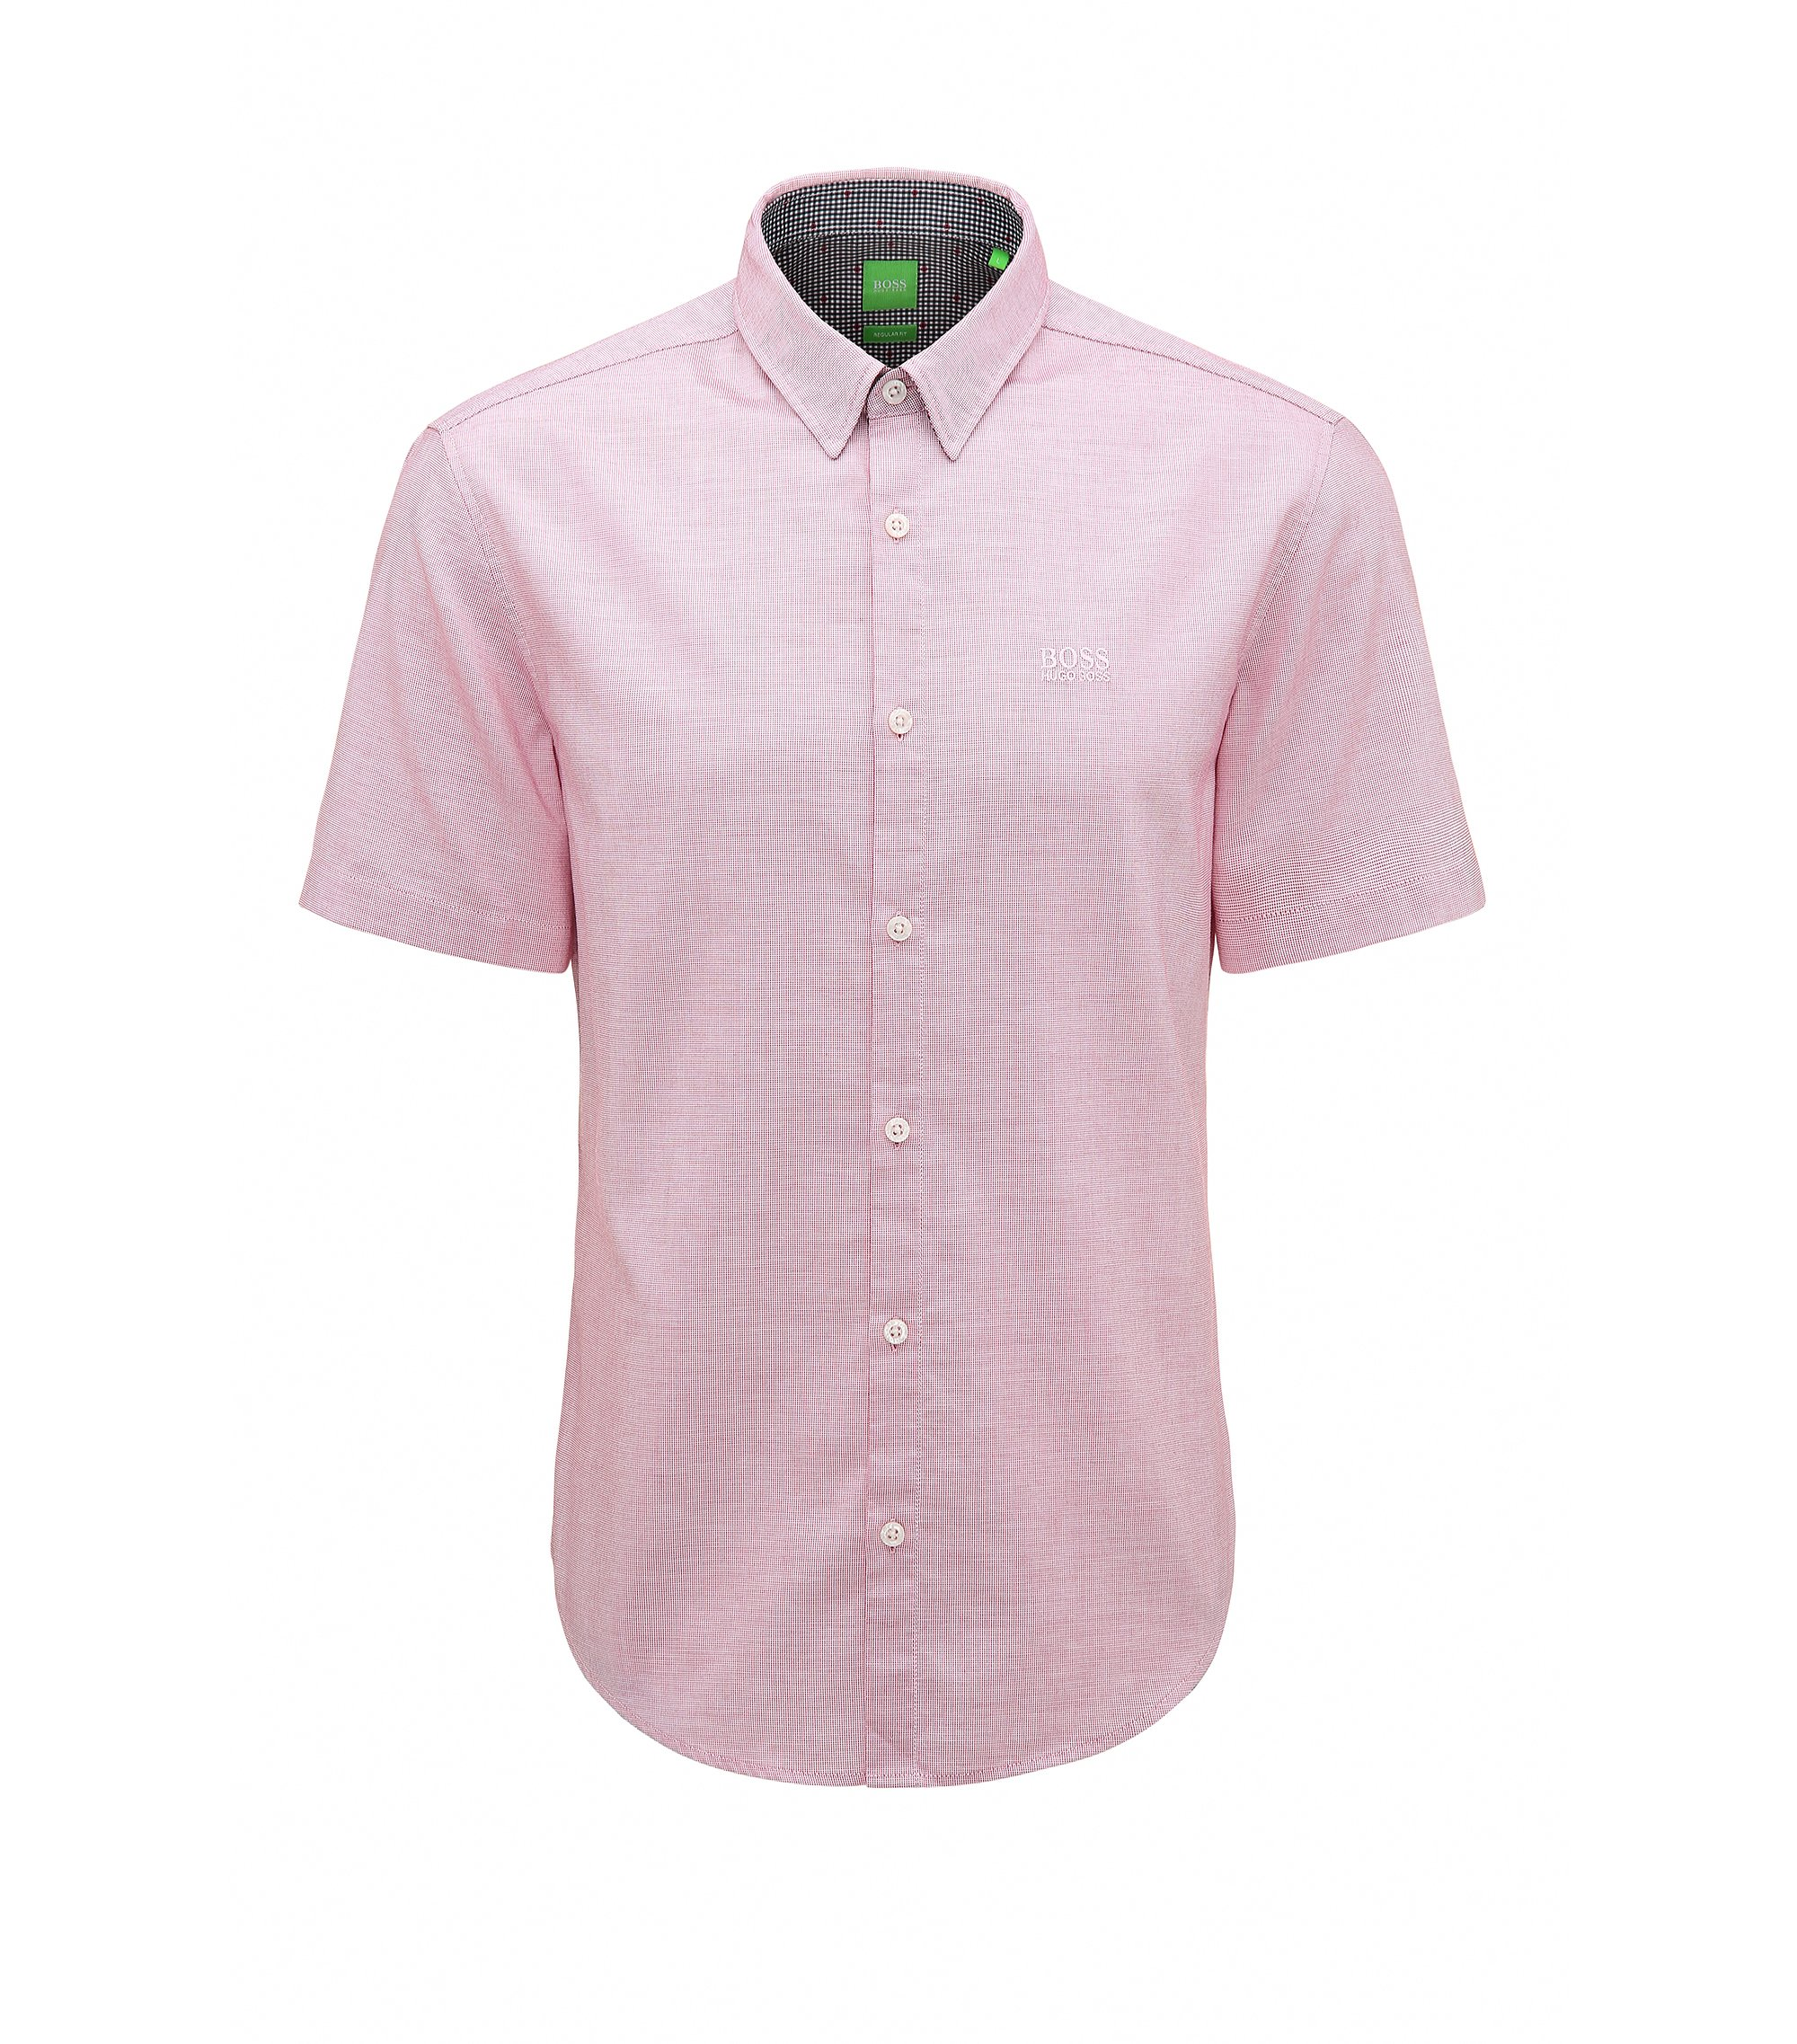 Cotton Button Down Shirt, Regular Fit | C-Busterino, Pink